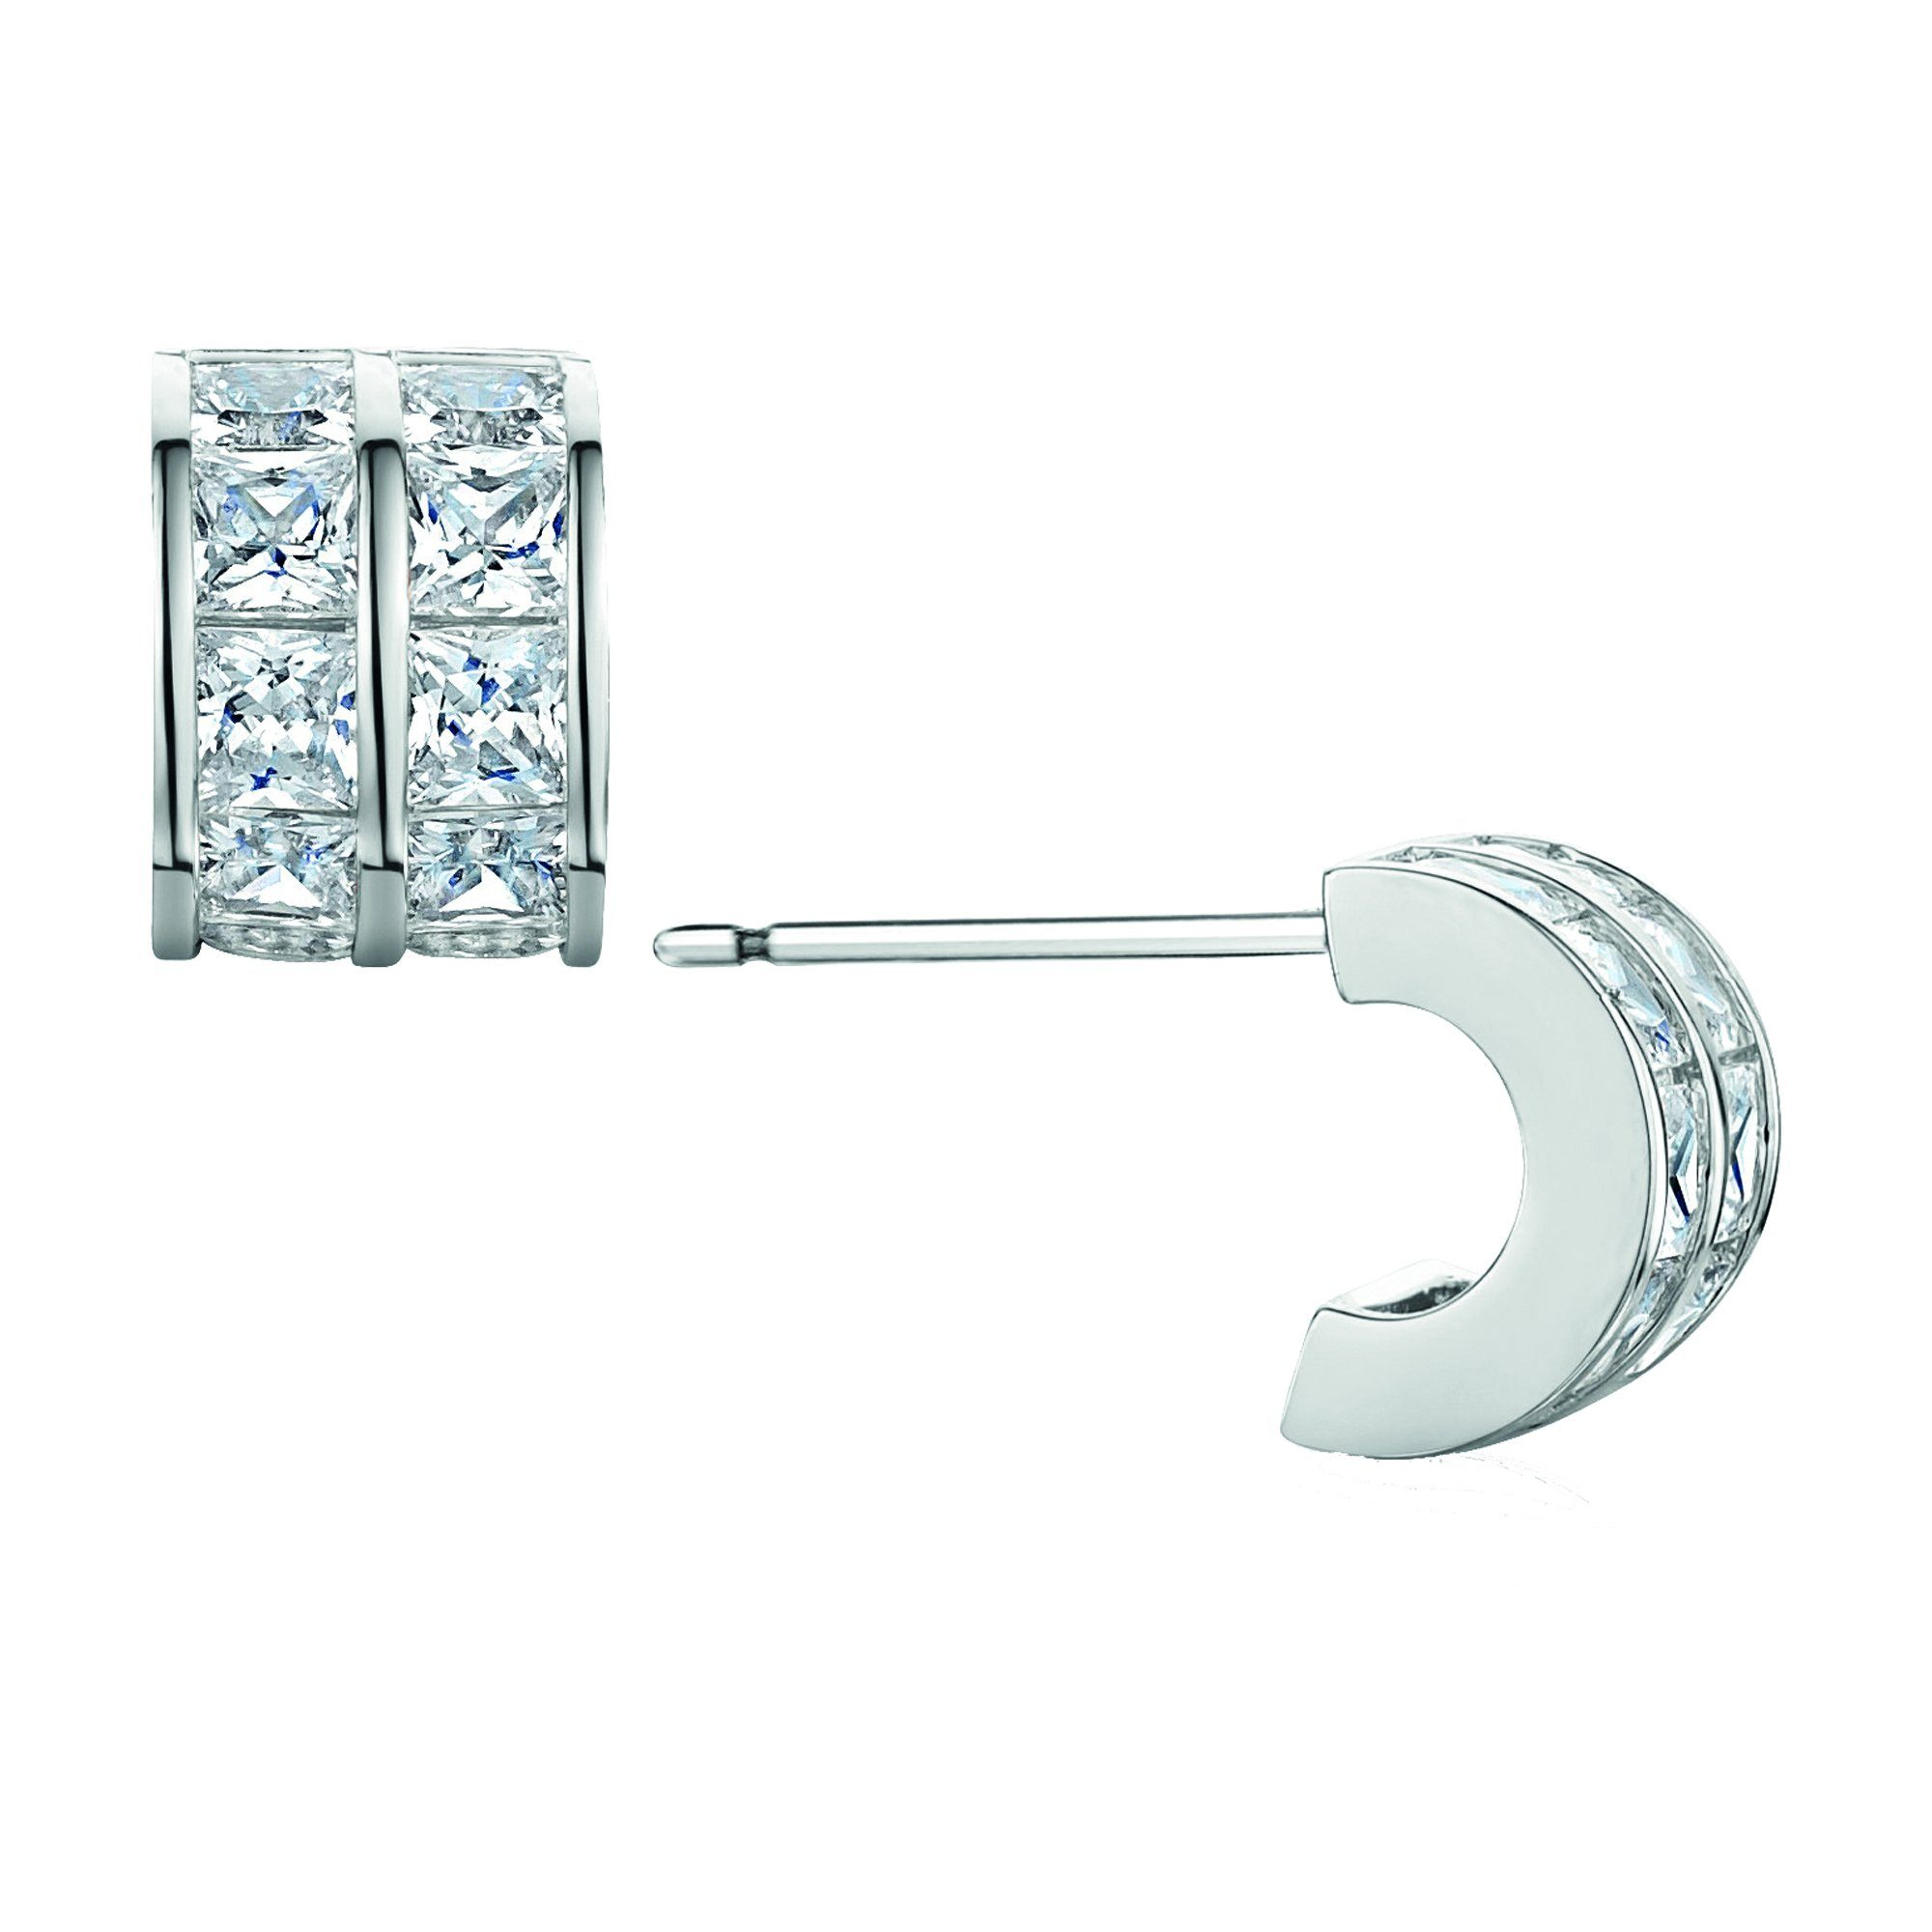 Buckley London Ohrstecker Messing rhodiniert | Schmuck > Ohrschmuck & Ohrringe > Ohrstecker | Weiß | buckley london